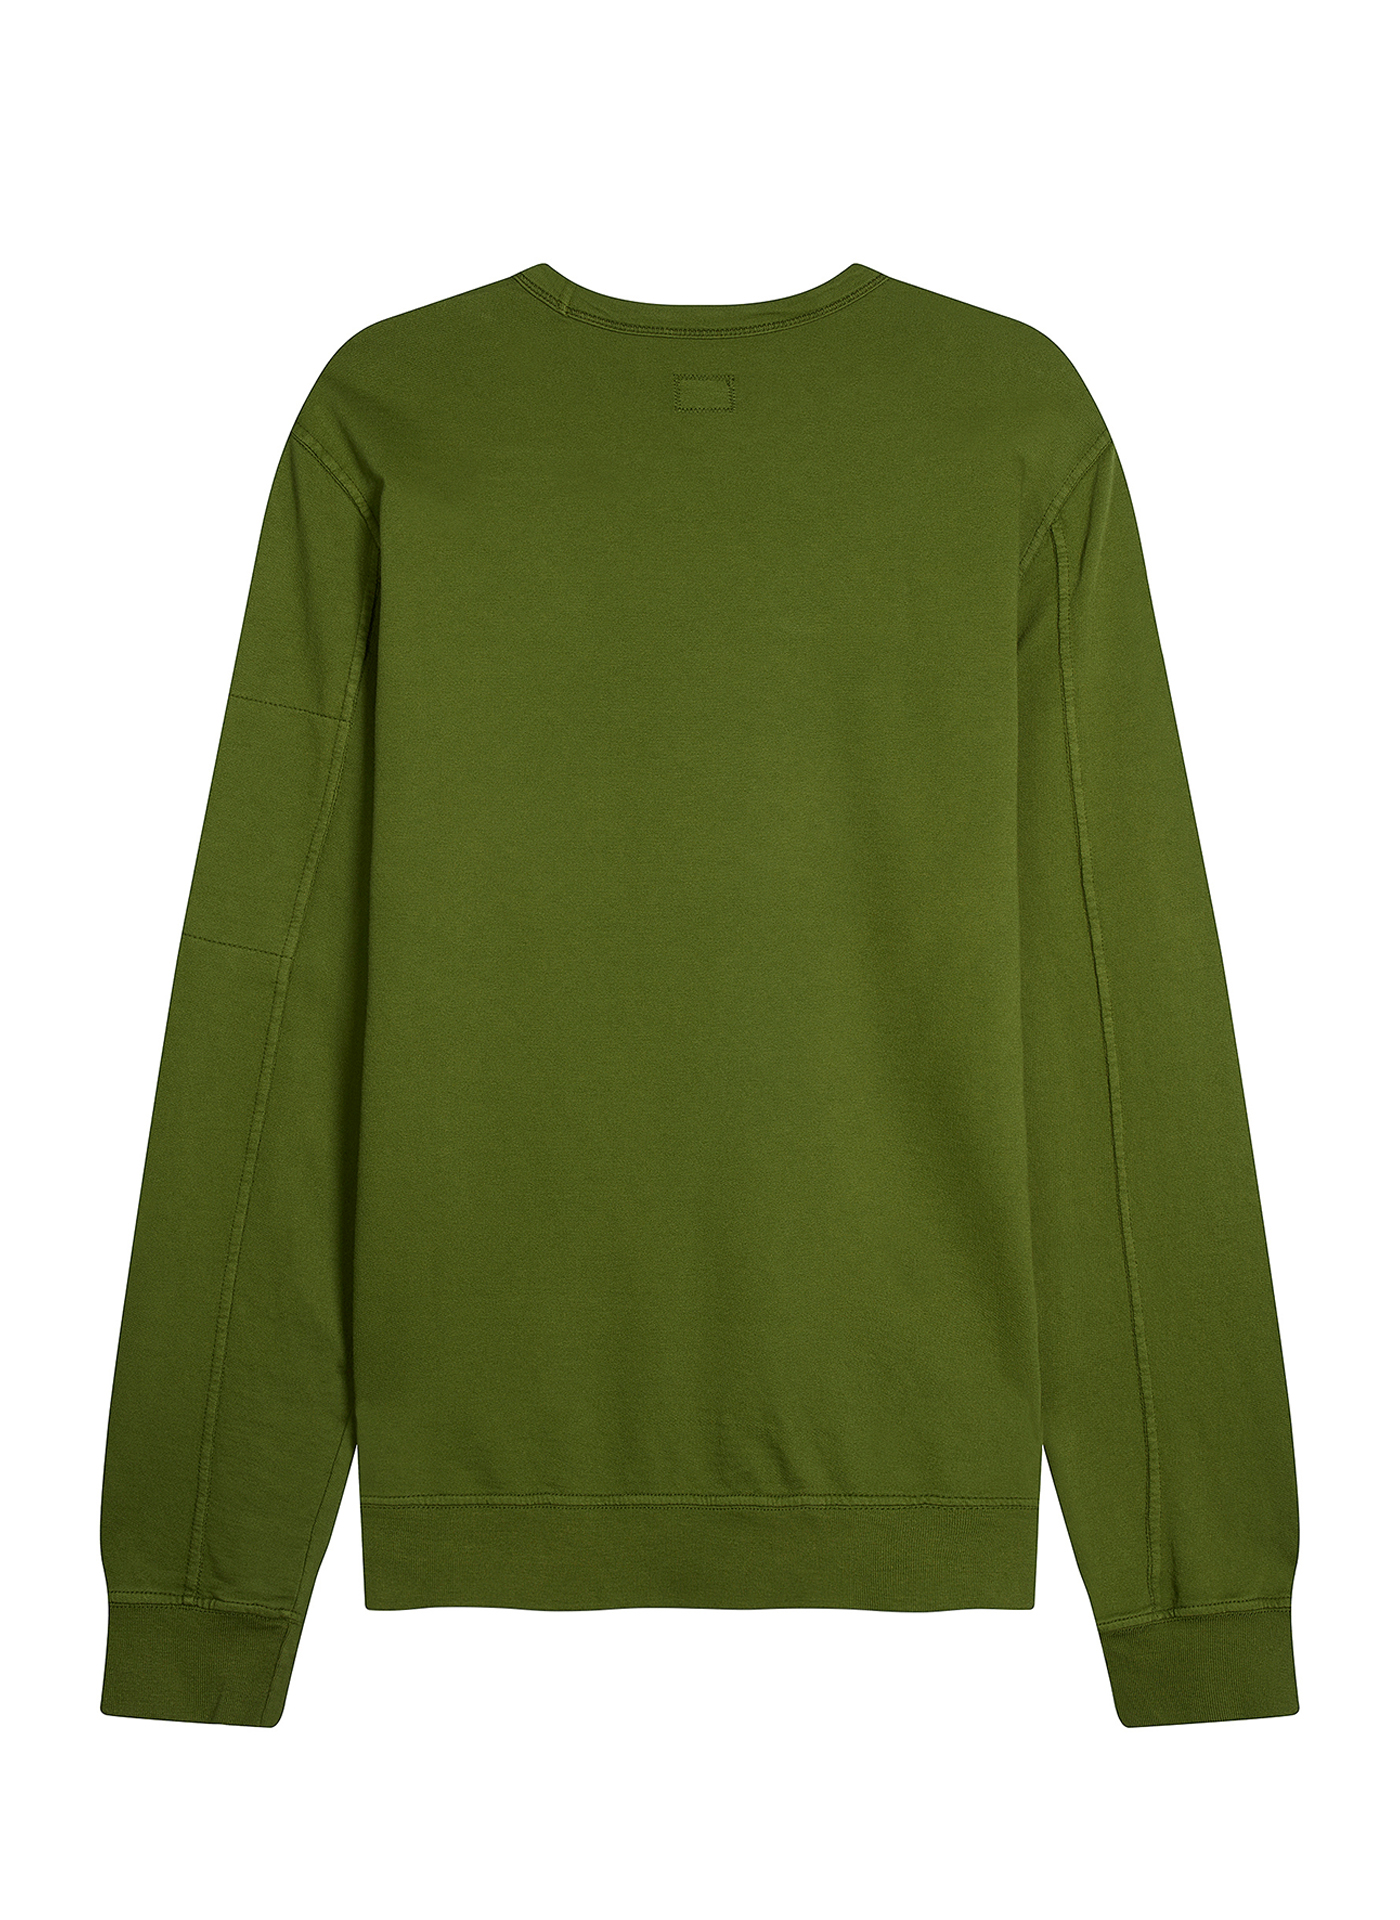 back side shot of green C.P. Company jumper on white background